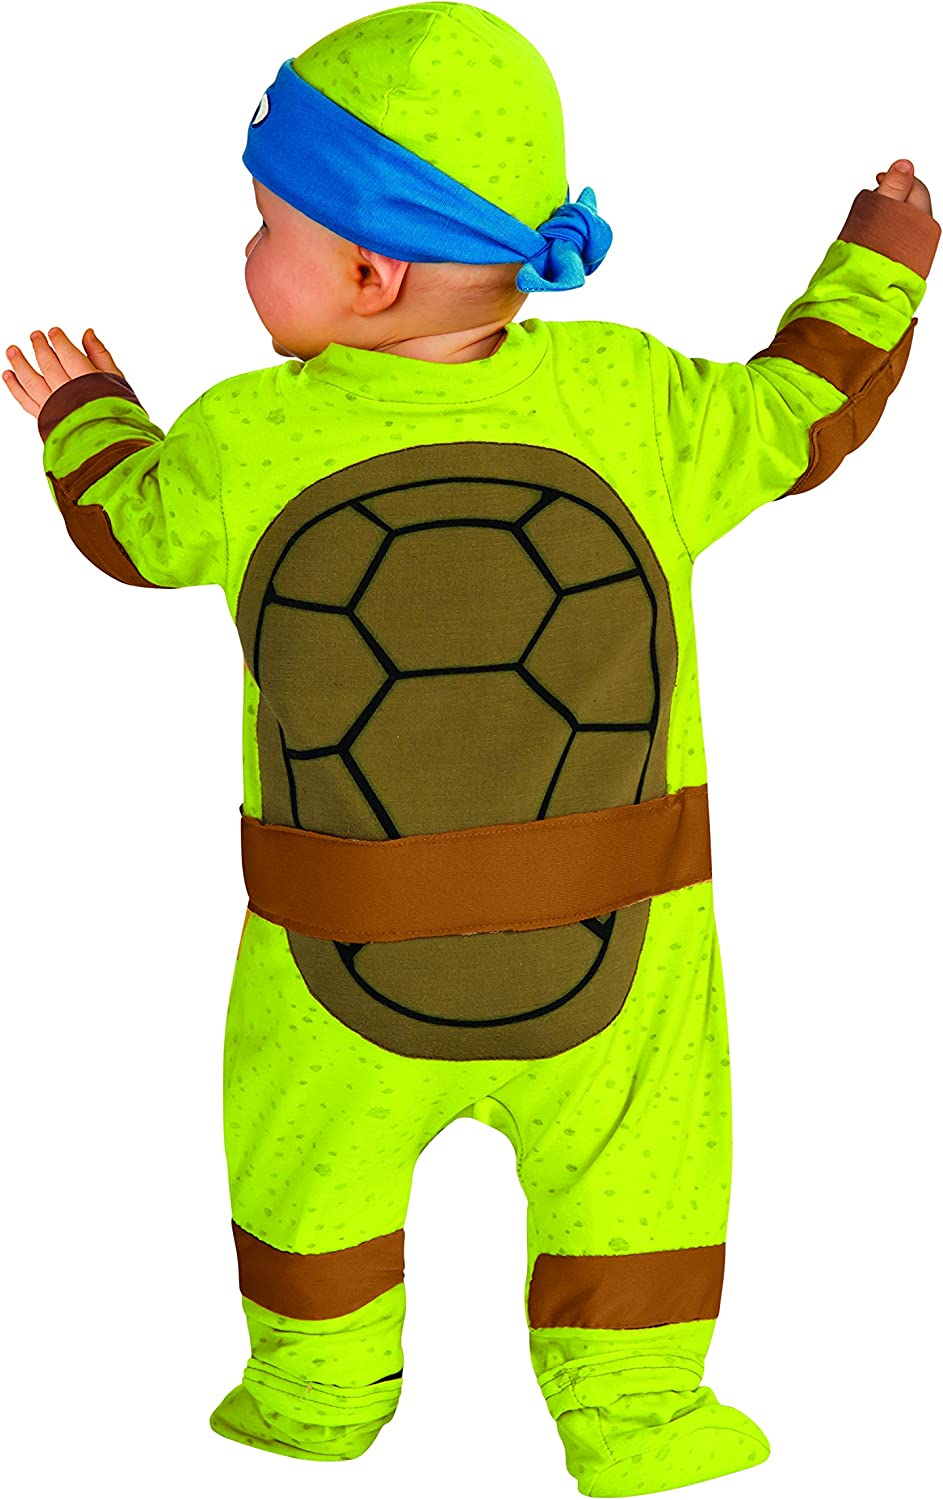 Amazon.com: Rubie s traje de Teenage Mutant Ninja Turtles ...